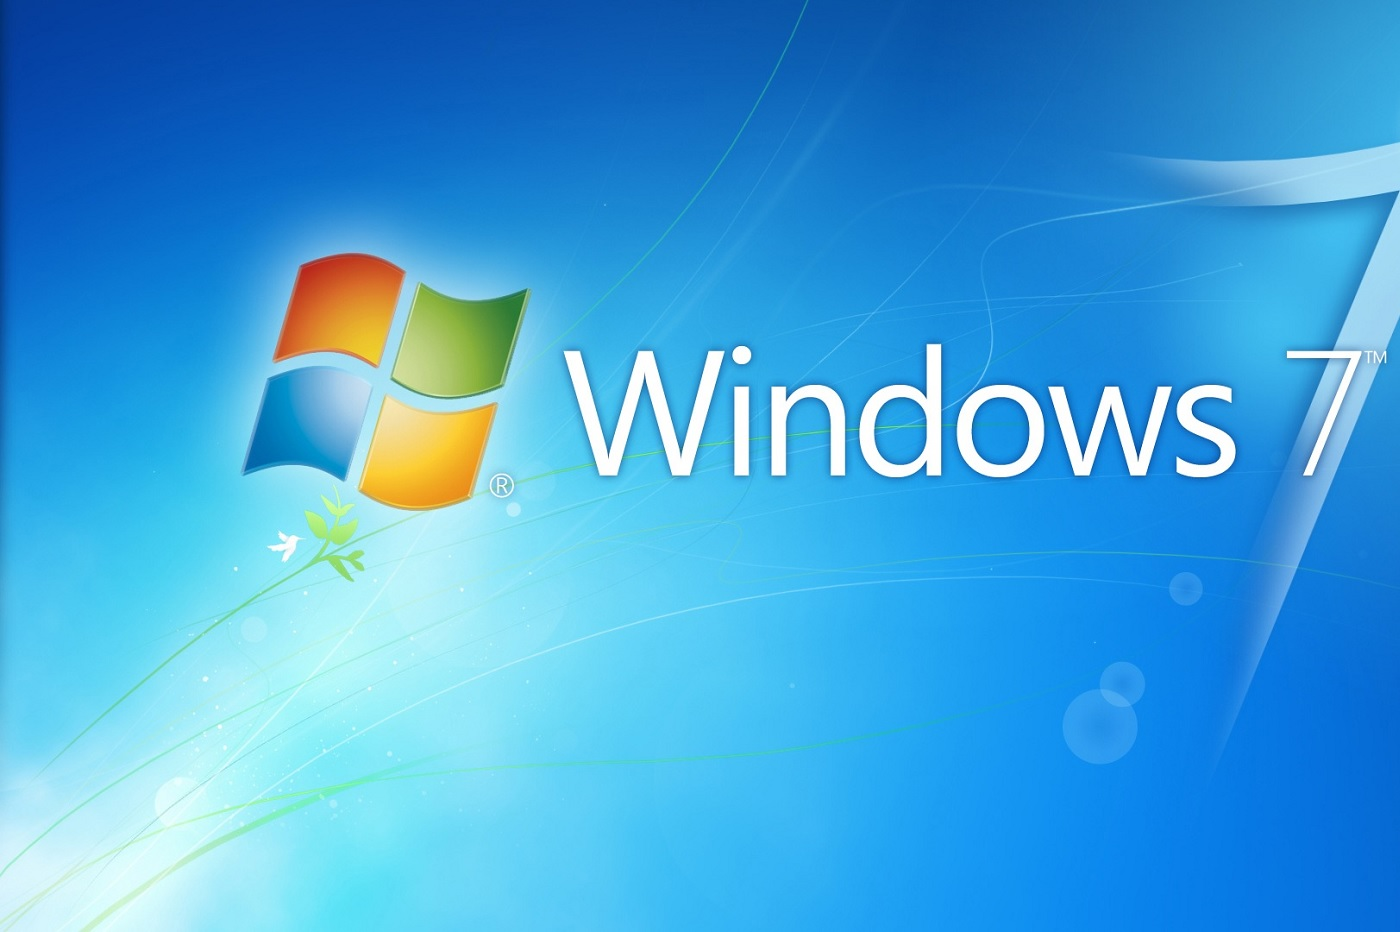 Windows 7 n'a plus qu'un an (de support) devant lui